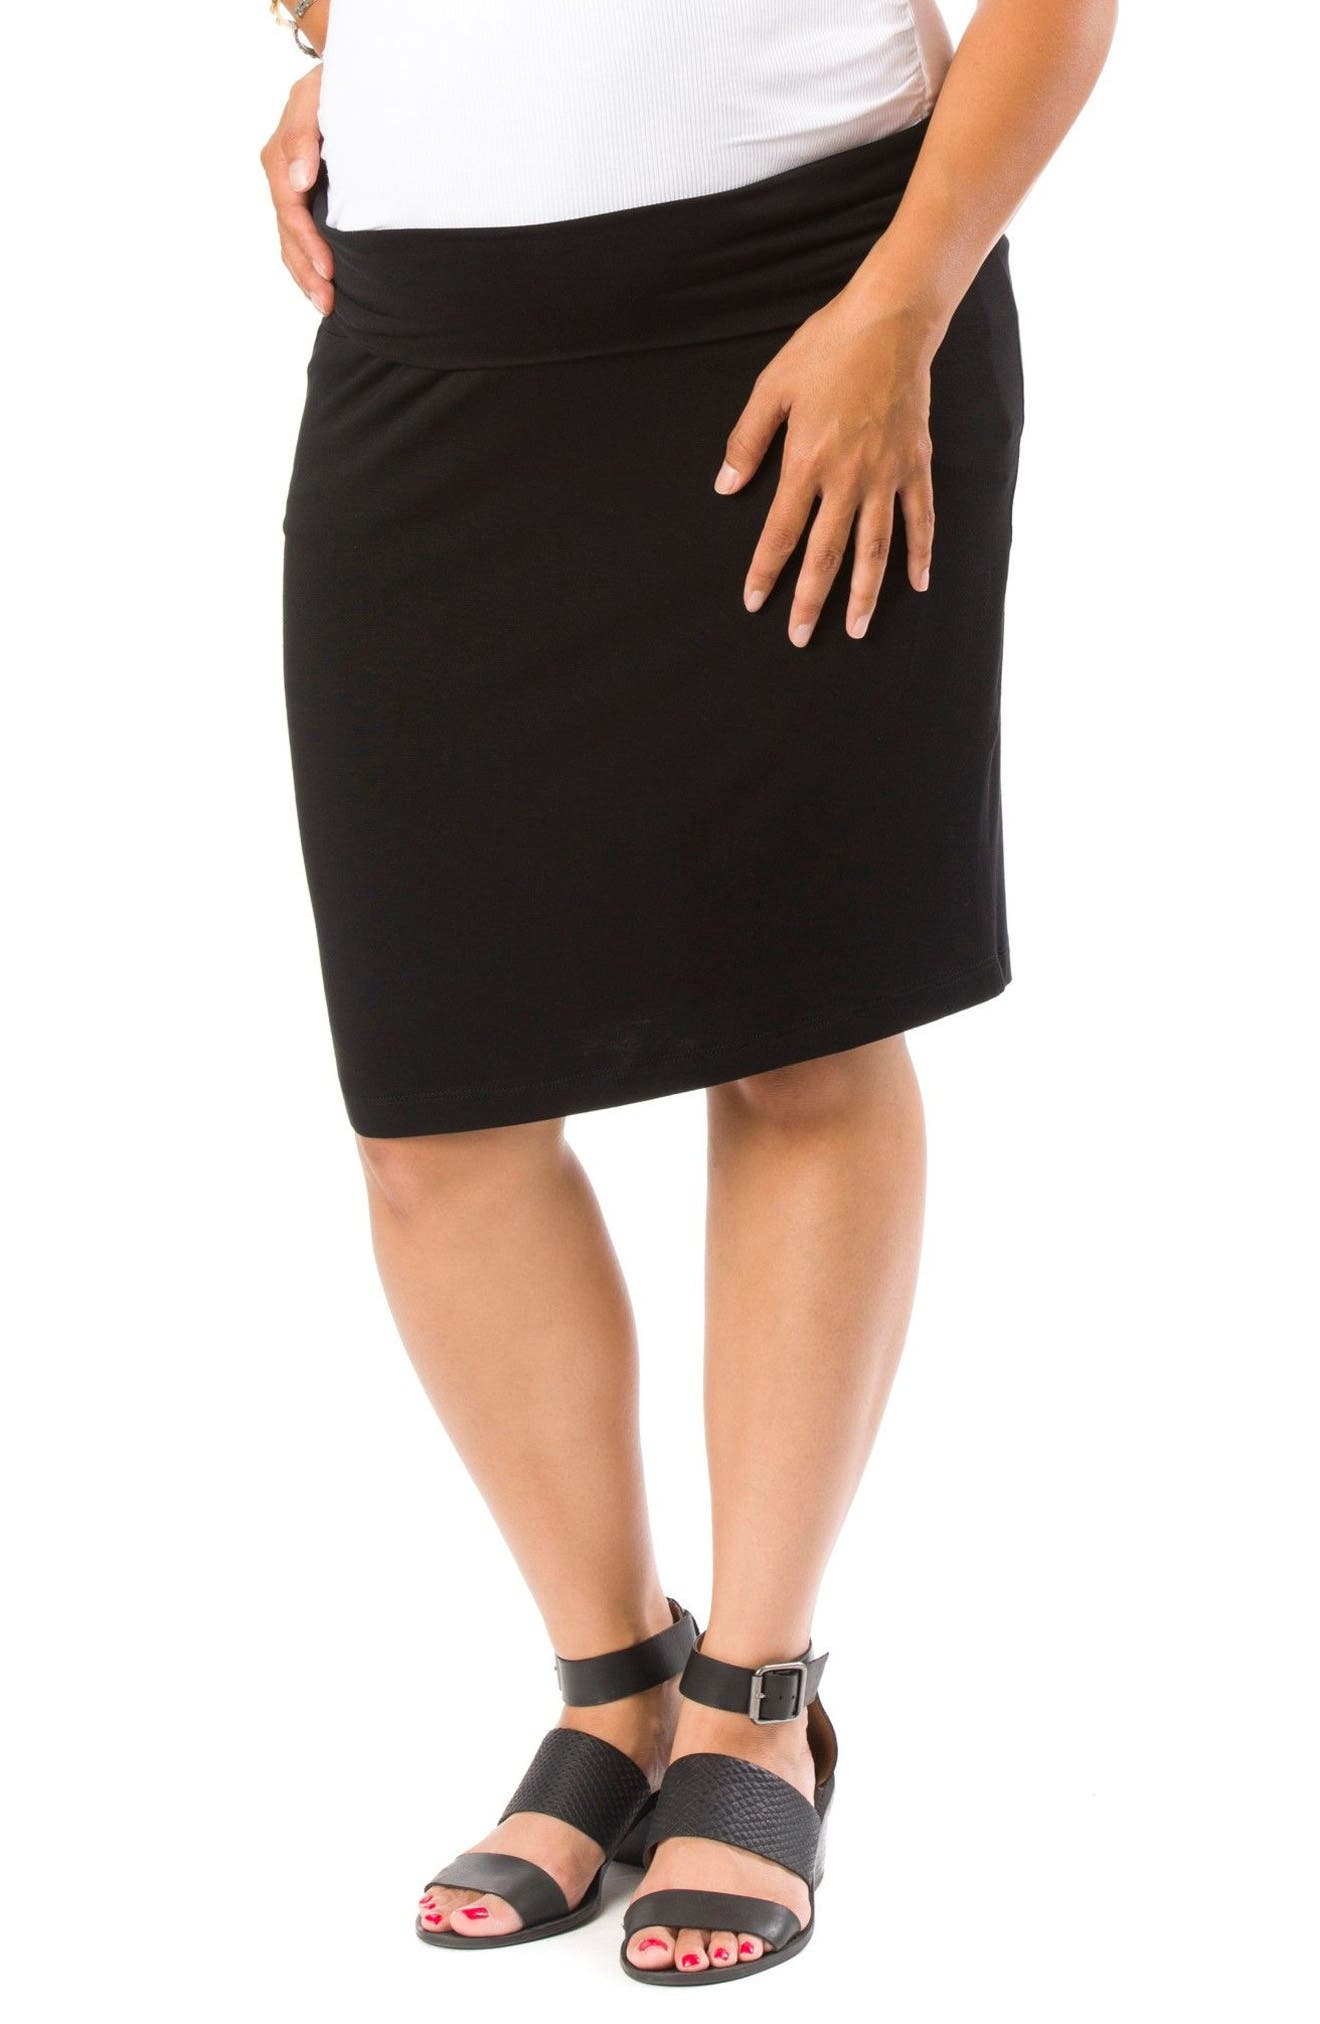 Main Image - LAB40 Cleo Maternity Pencil Skirt